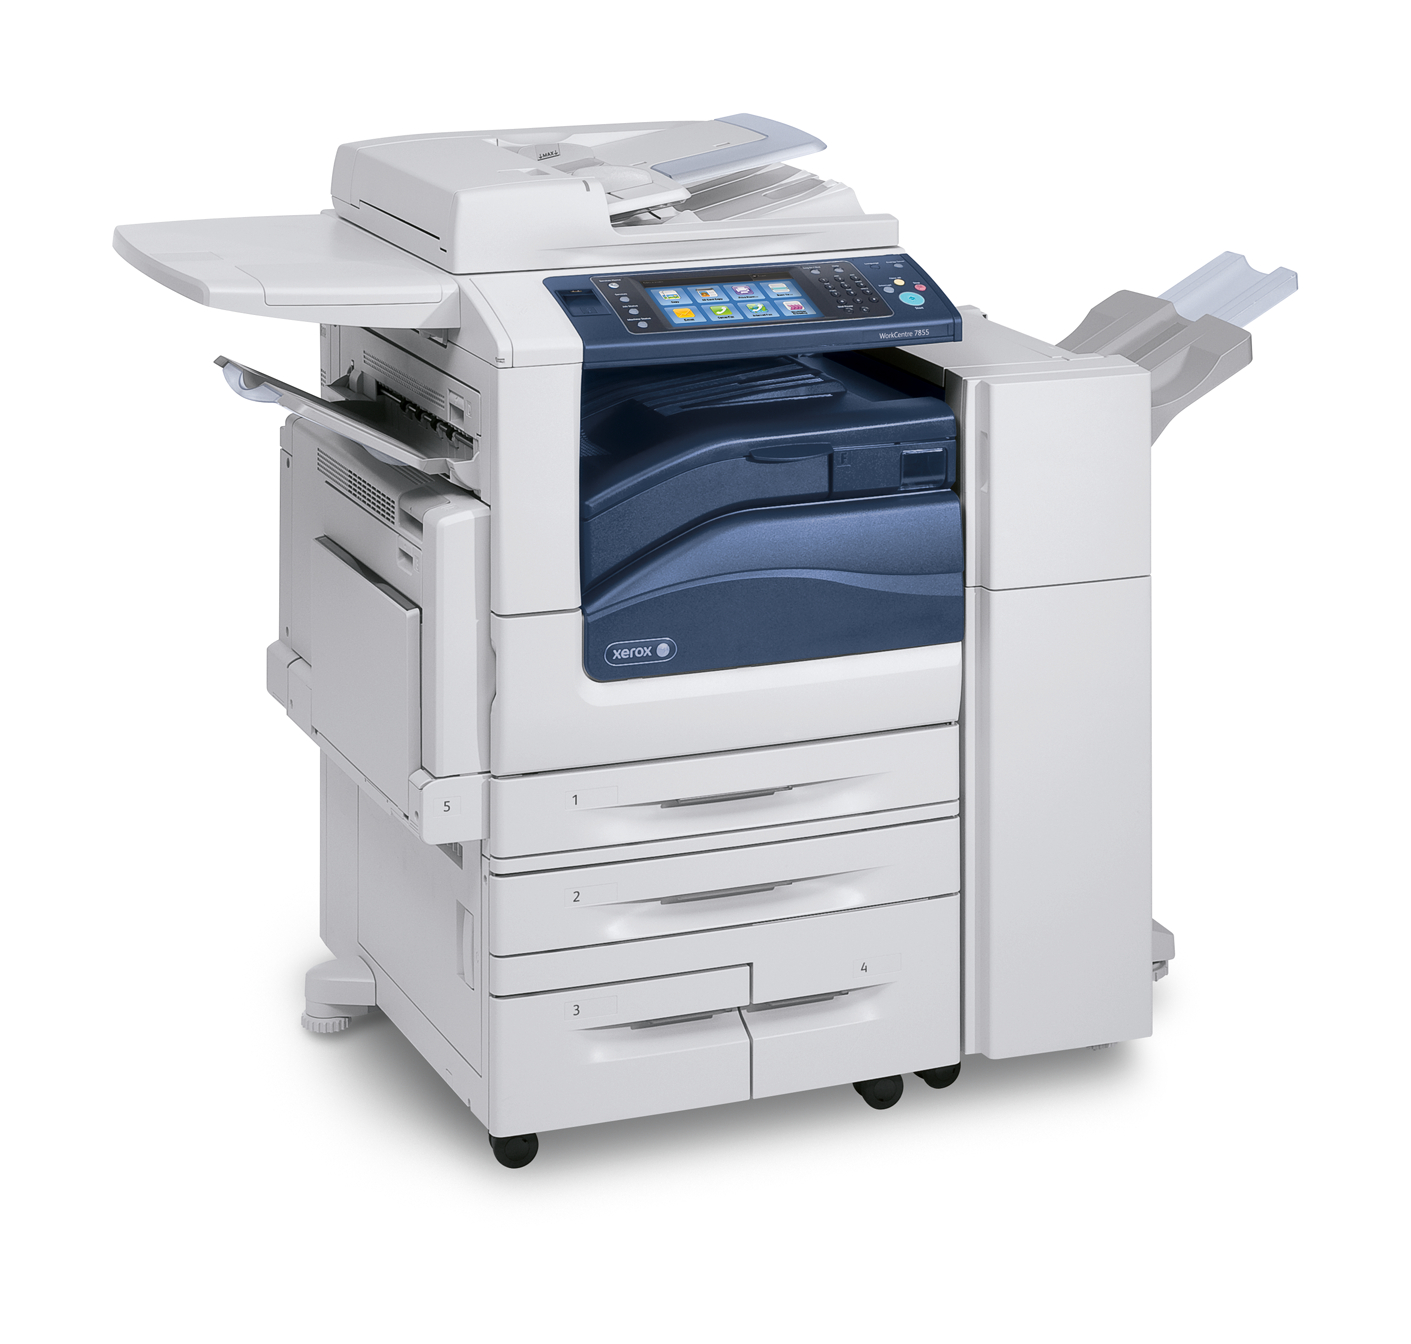 7845 xerox Copy Machine Rental 55959, 55987